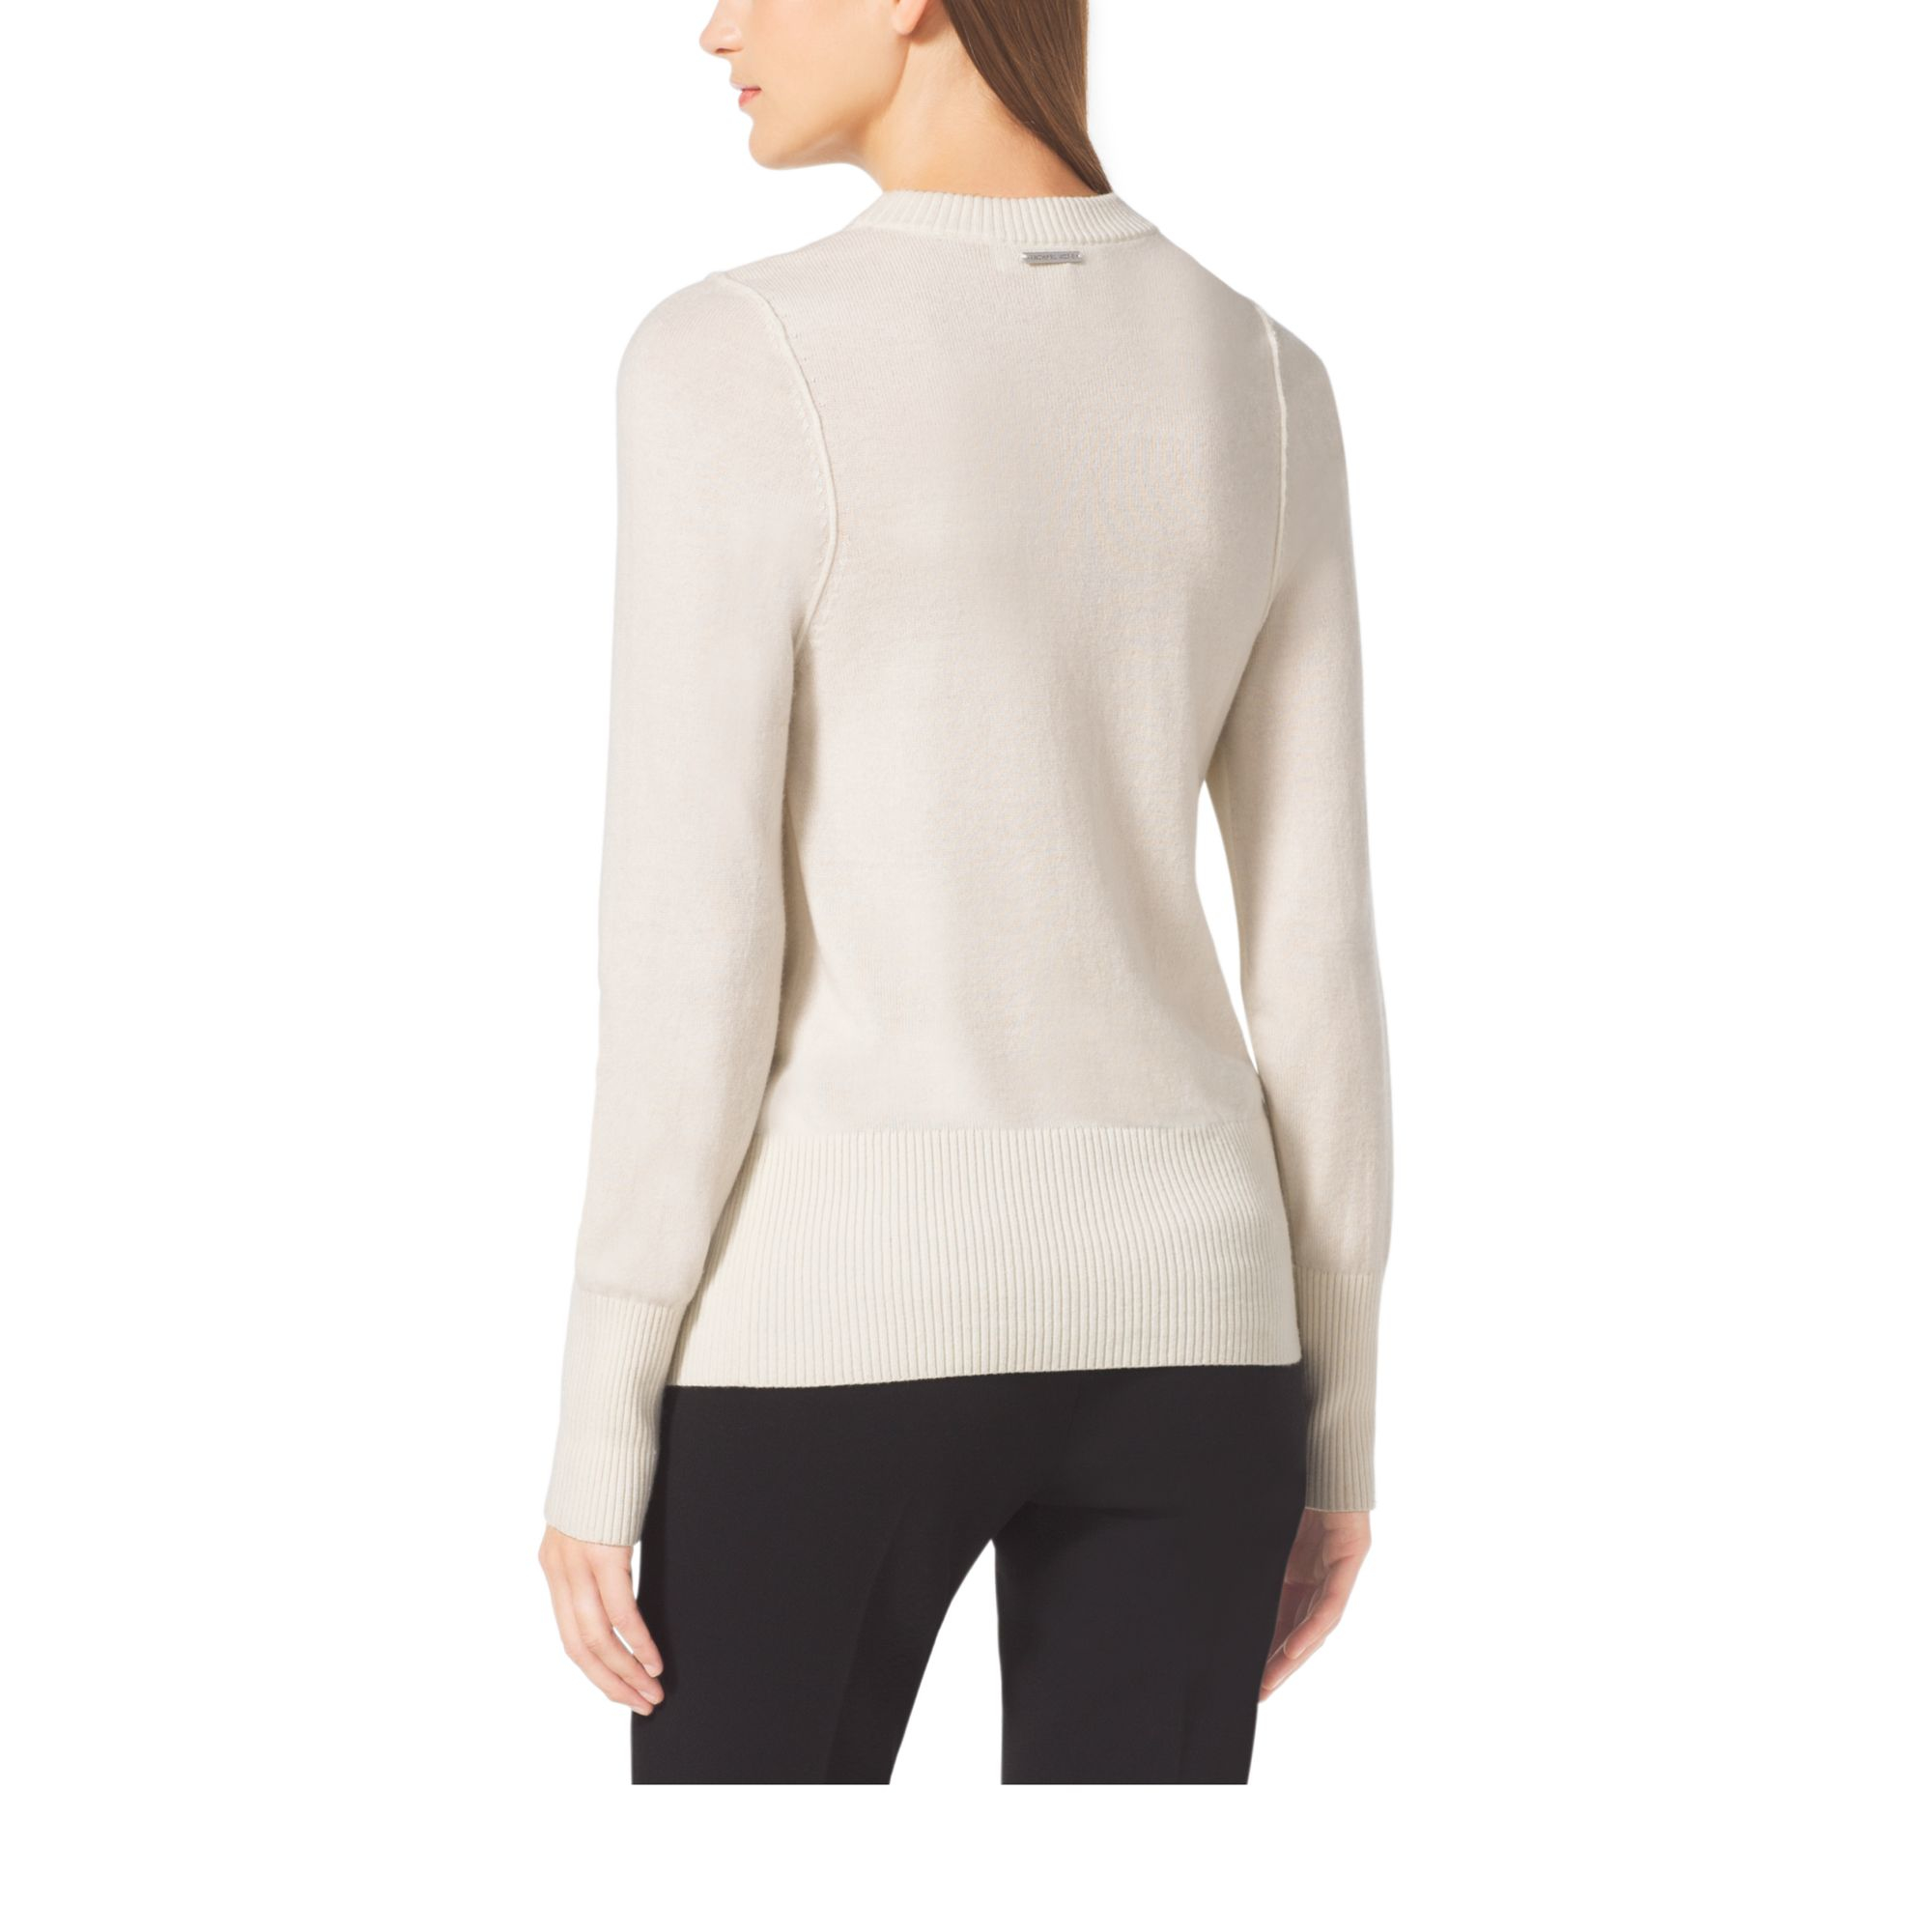 3de007ca141d Michael Kors Merino Wool And Cashmere Sweater in Natural - Lyst